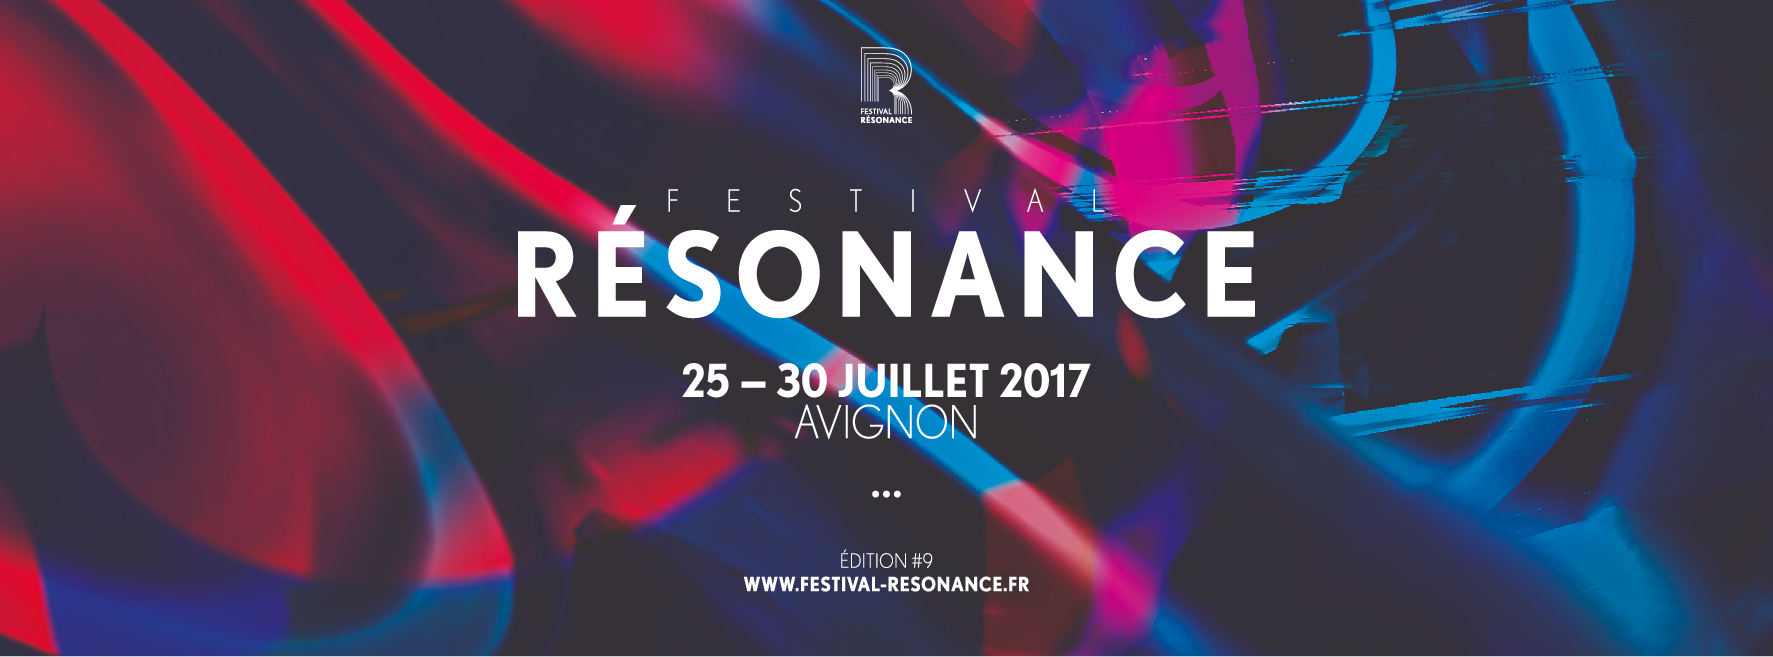 Festival Resonance